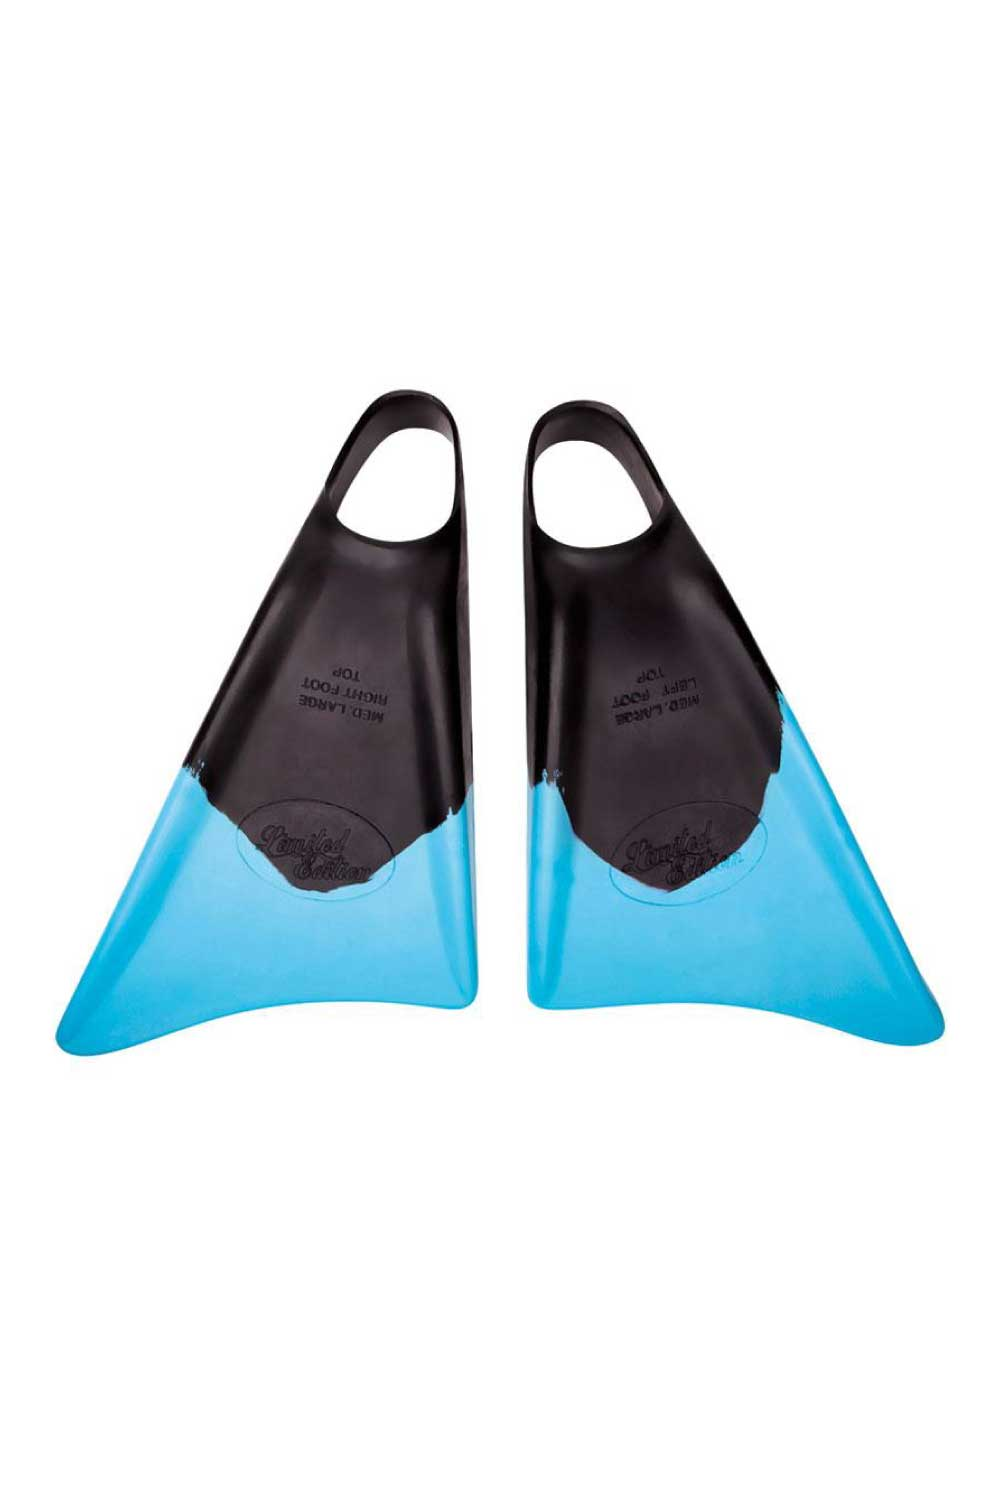 Limited Edition Bodyboard Fins Black/Ice